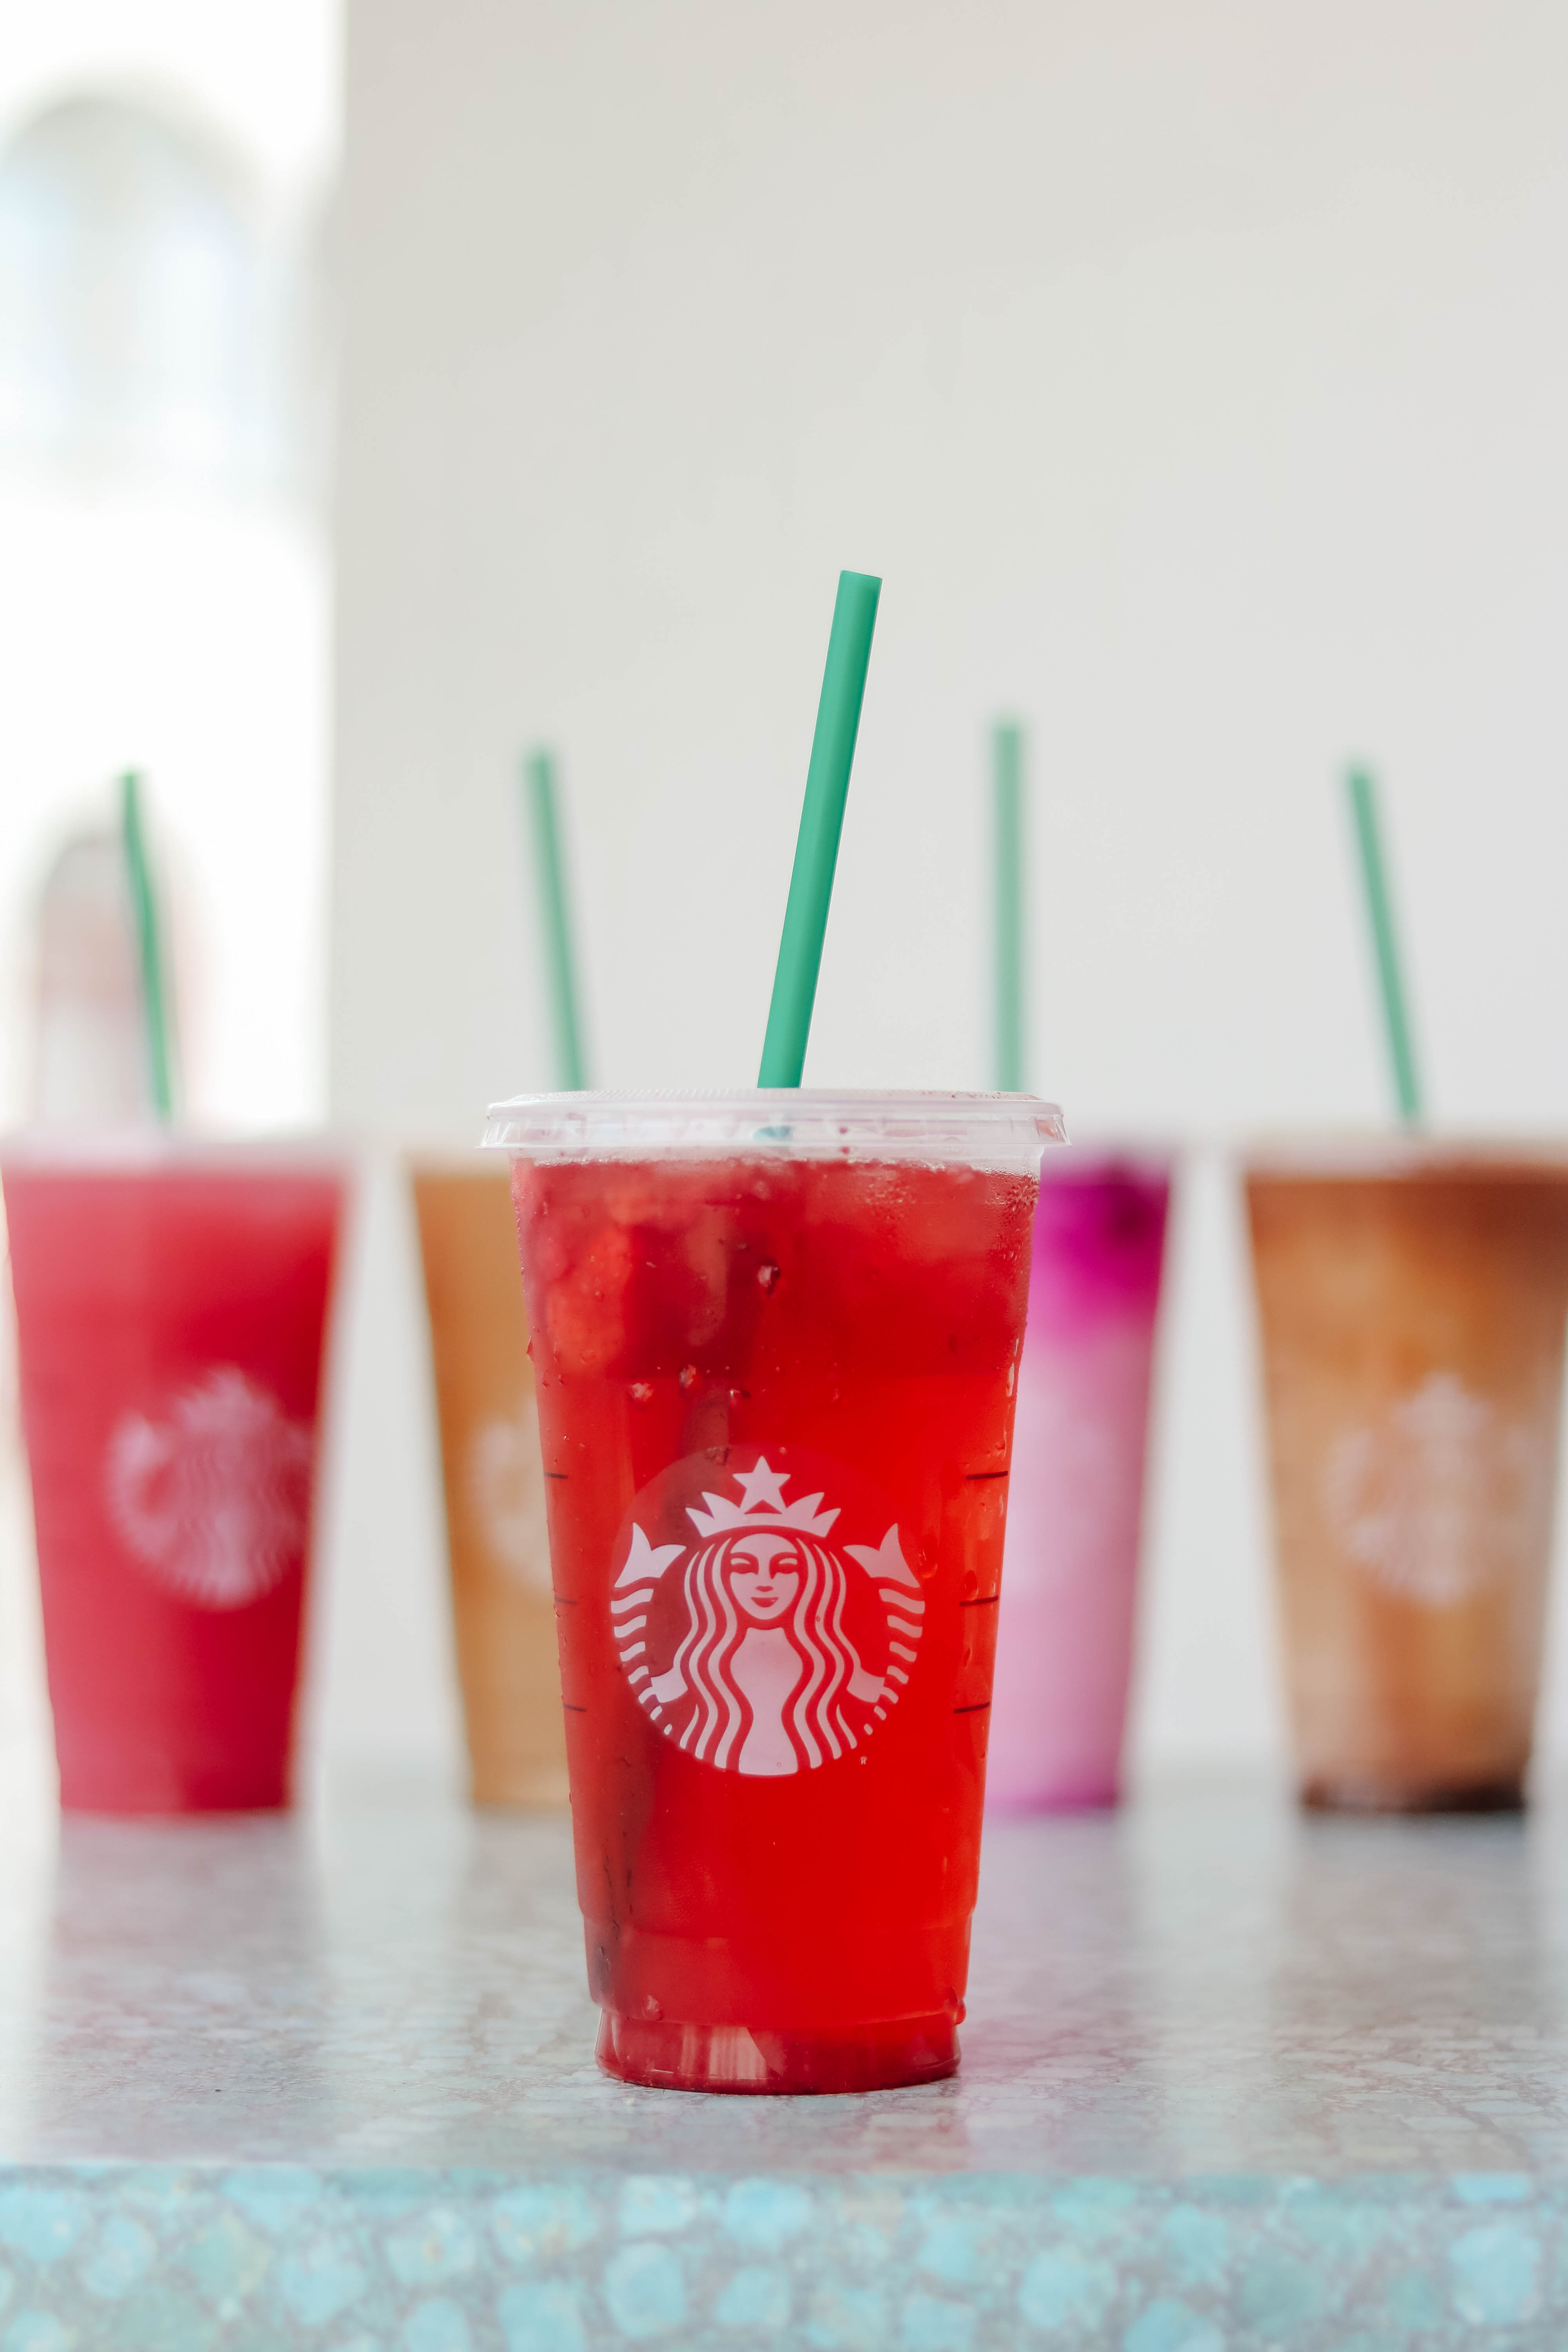 5 Refreshing Starbucks Drinks - Yummy drinks for summer, and how to specifically ask for them at Starbucks! on Coming Up Roses